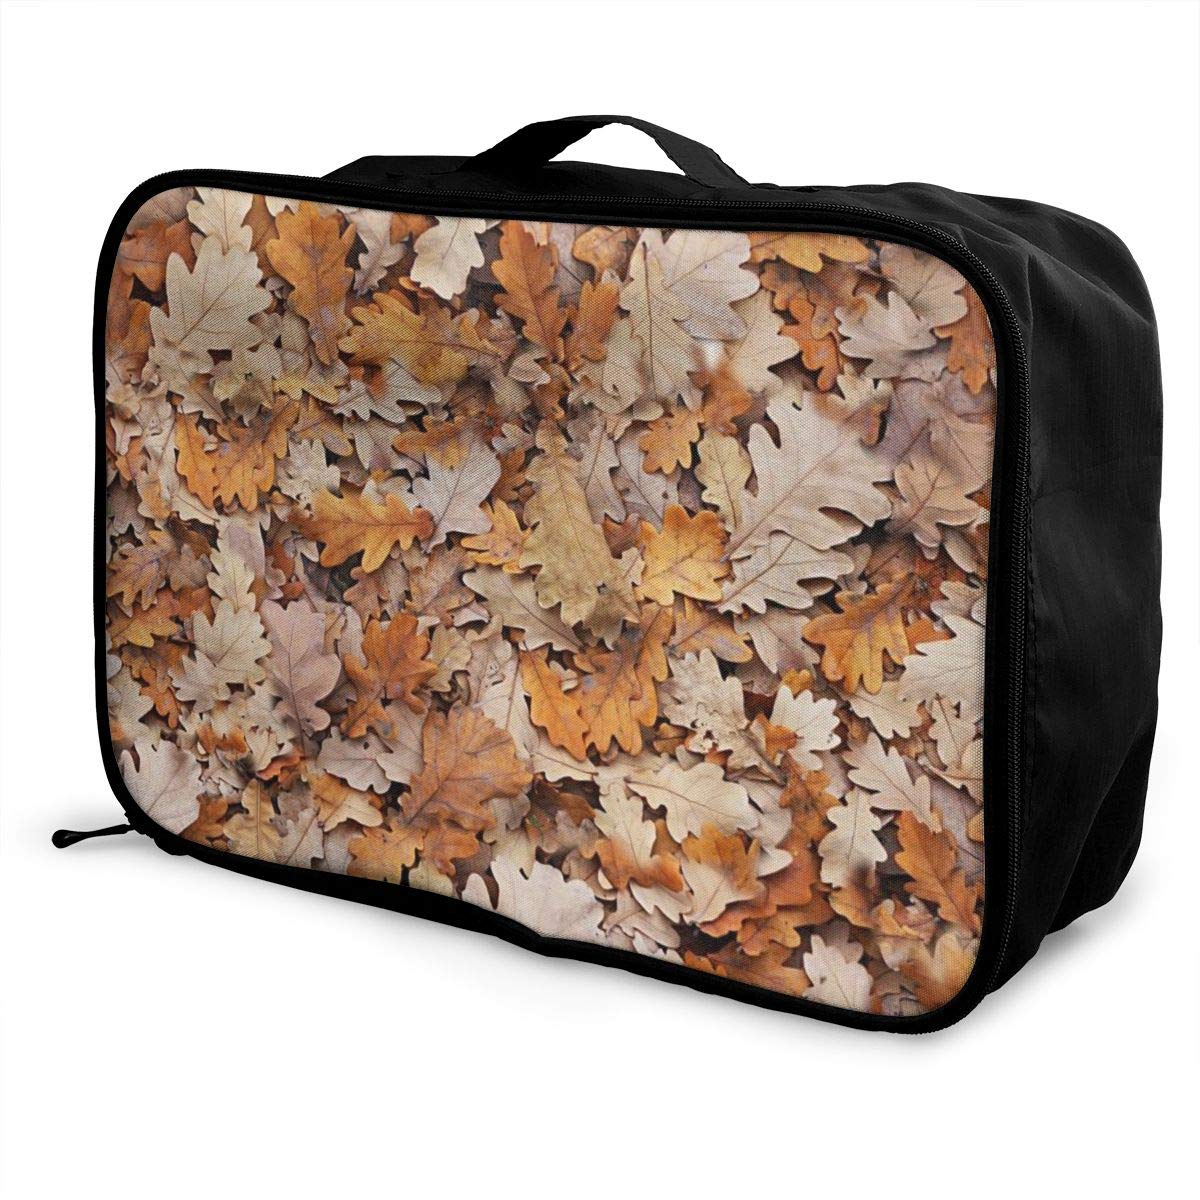 Autumn Leaves Travel Carry Luggage Duffle Tote Bag